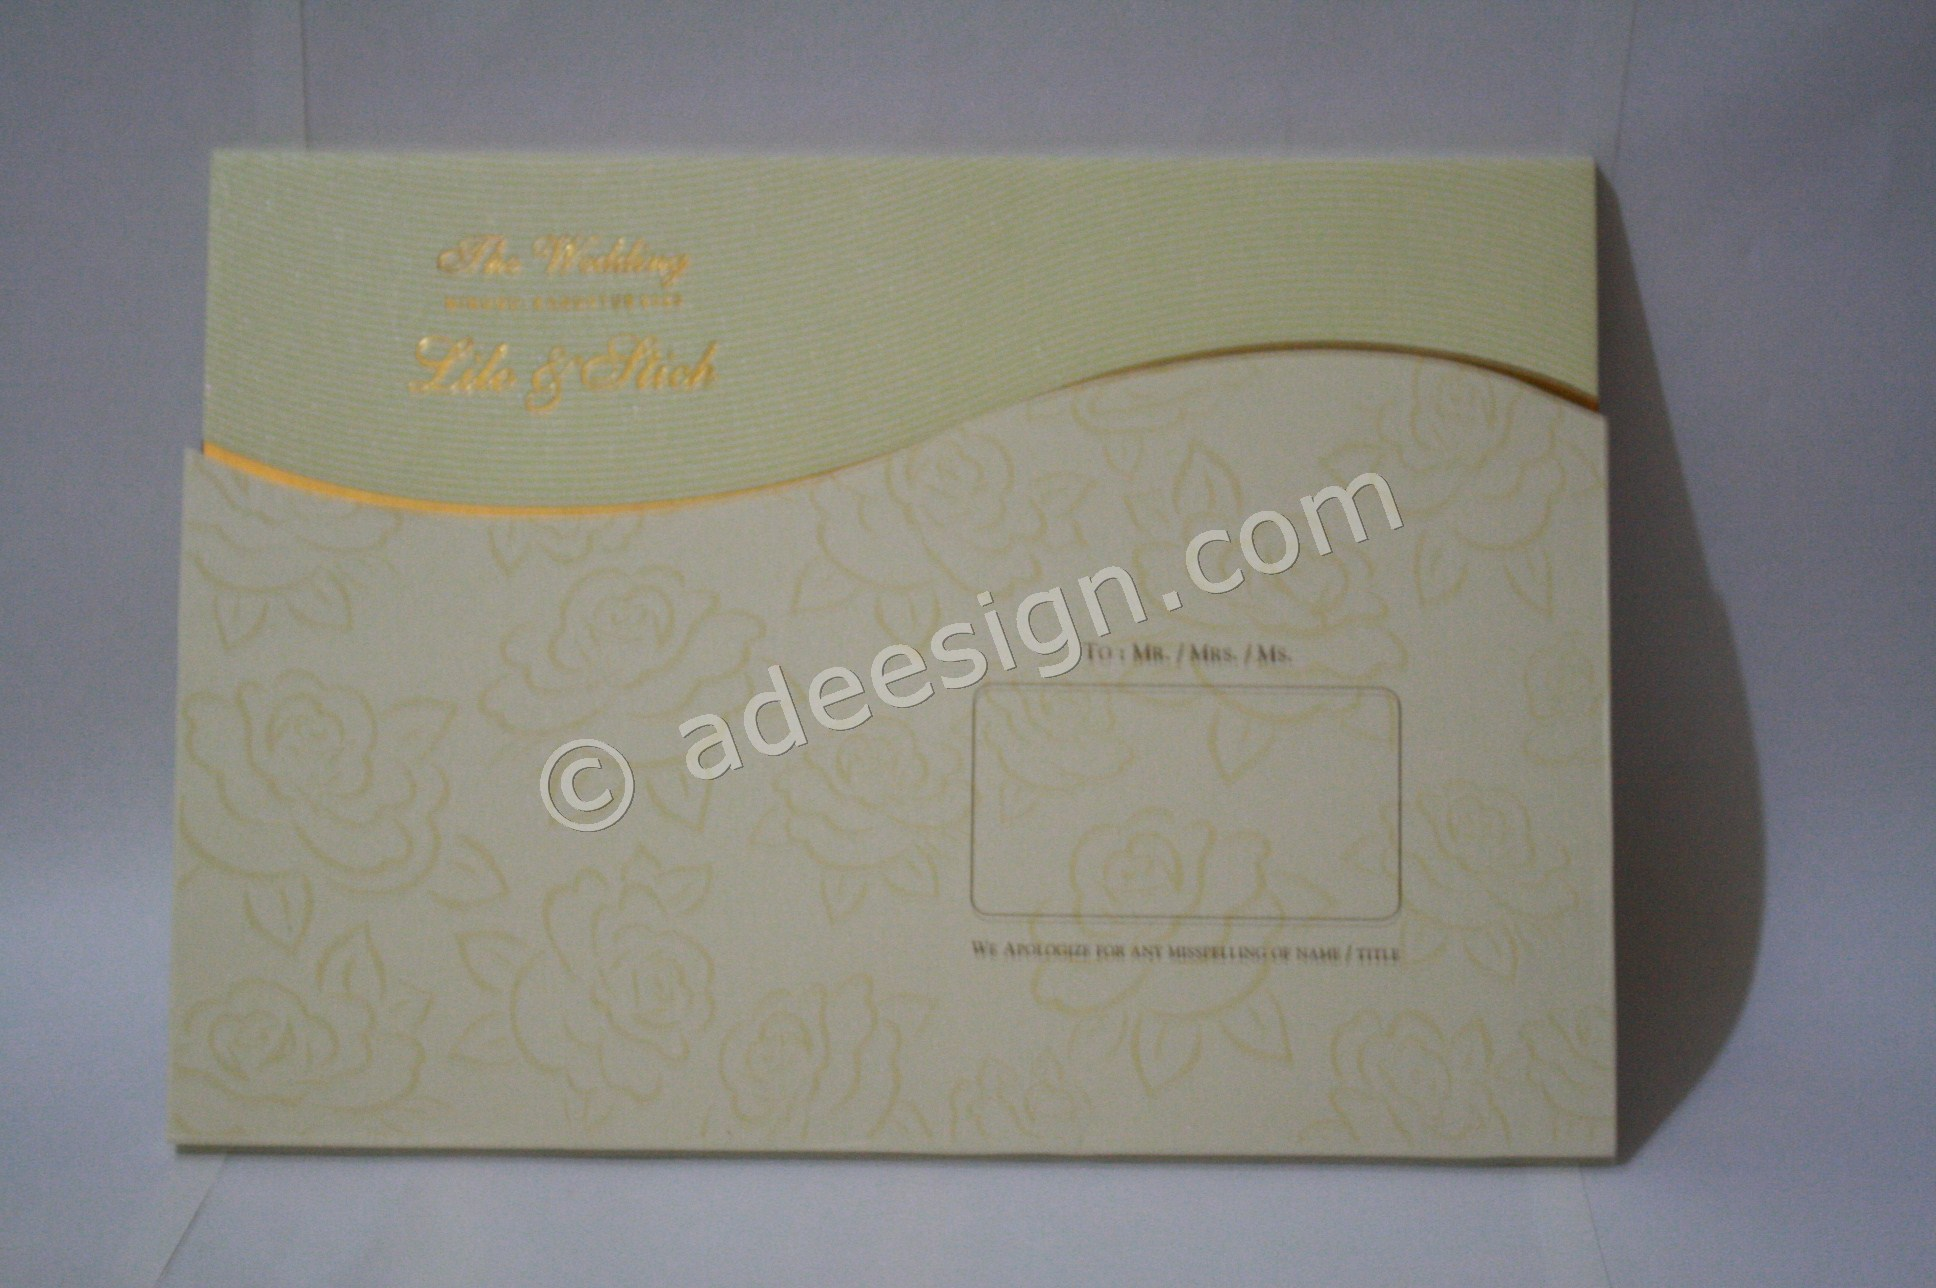 Cetak Wedding Invitations Online di Keputih